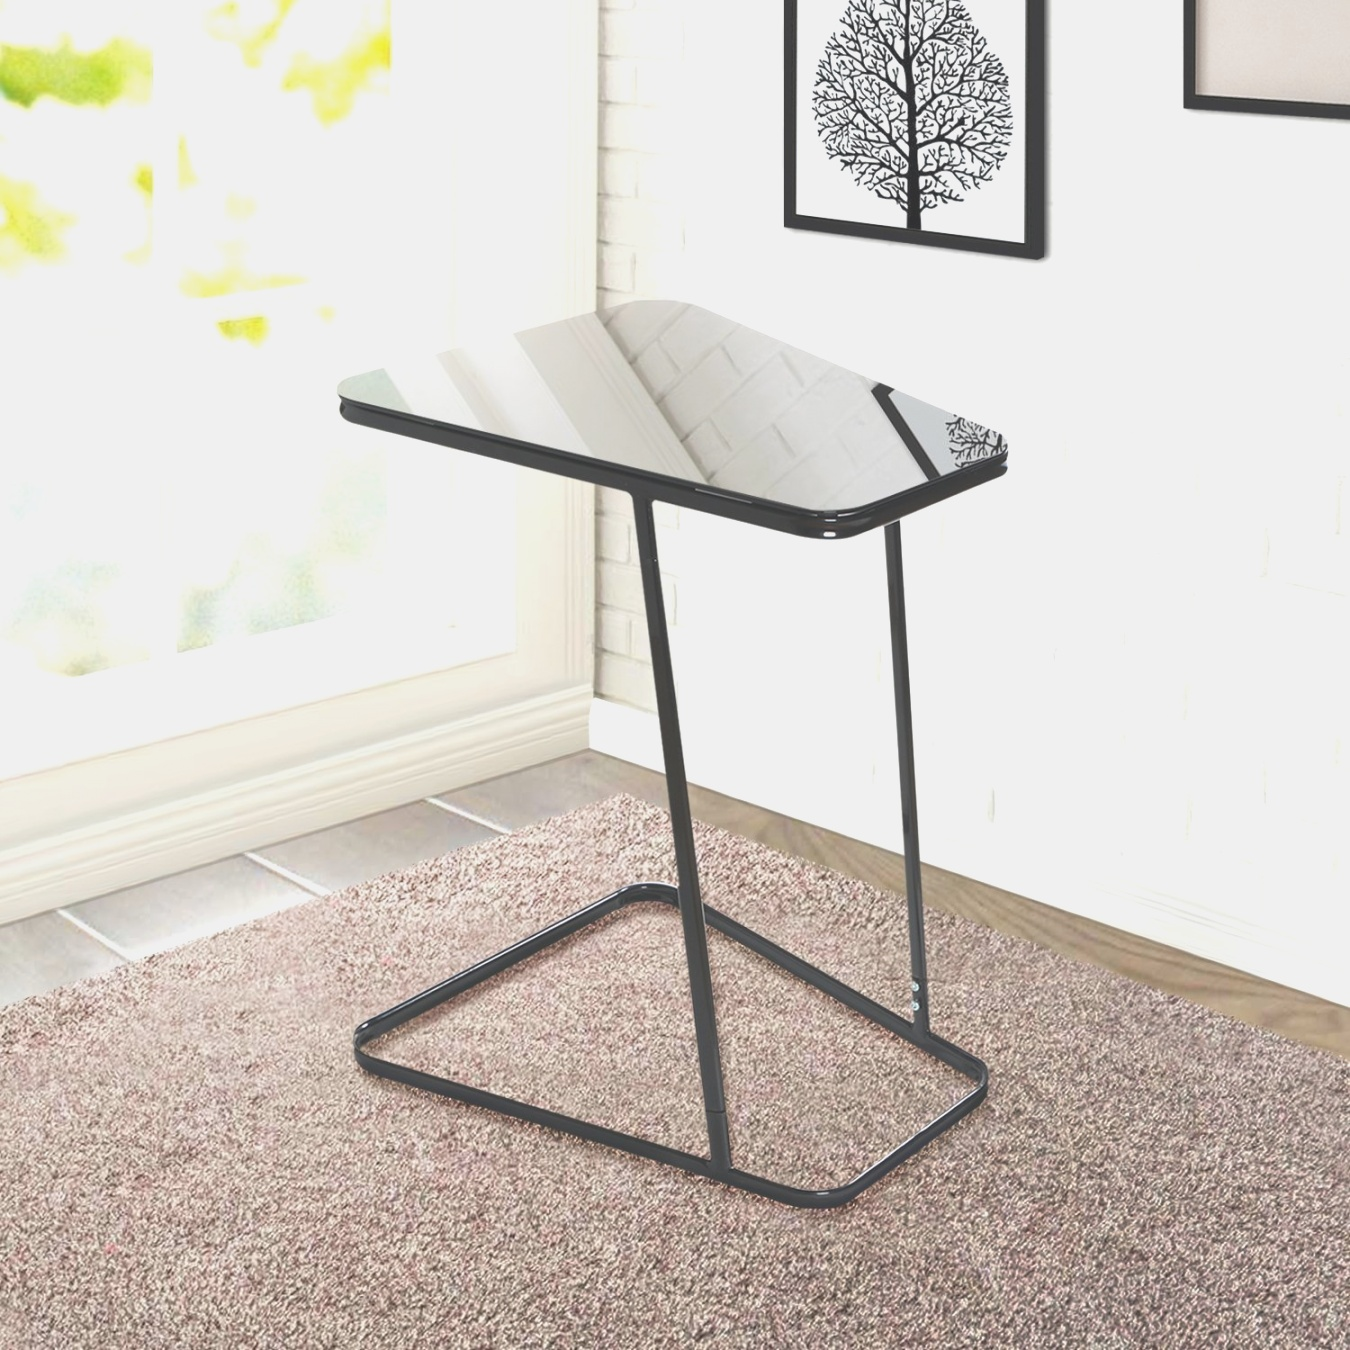 c side table | Amazon.com: Lifewit End Table Side Snack Coffee Sofa Table Modern ..